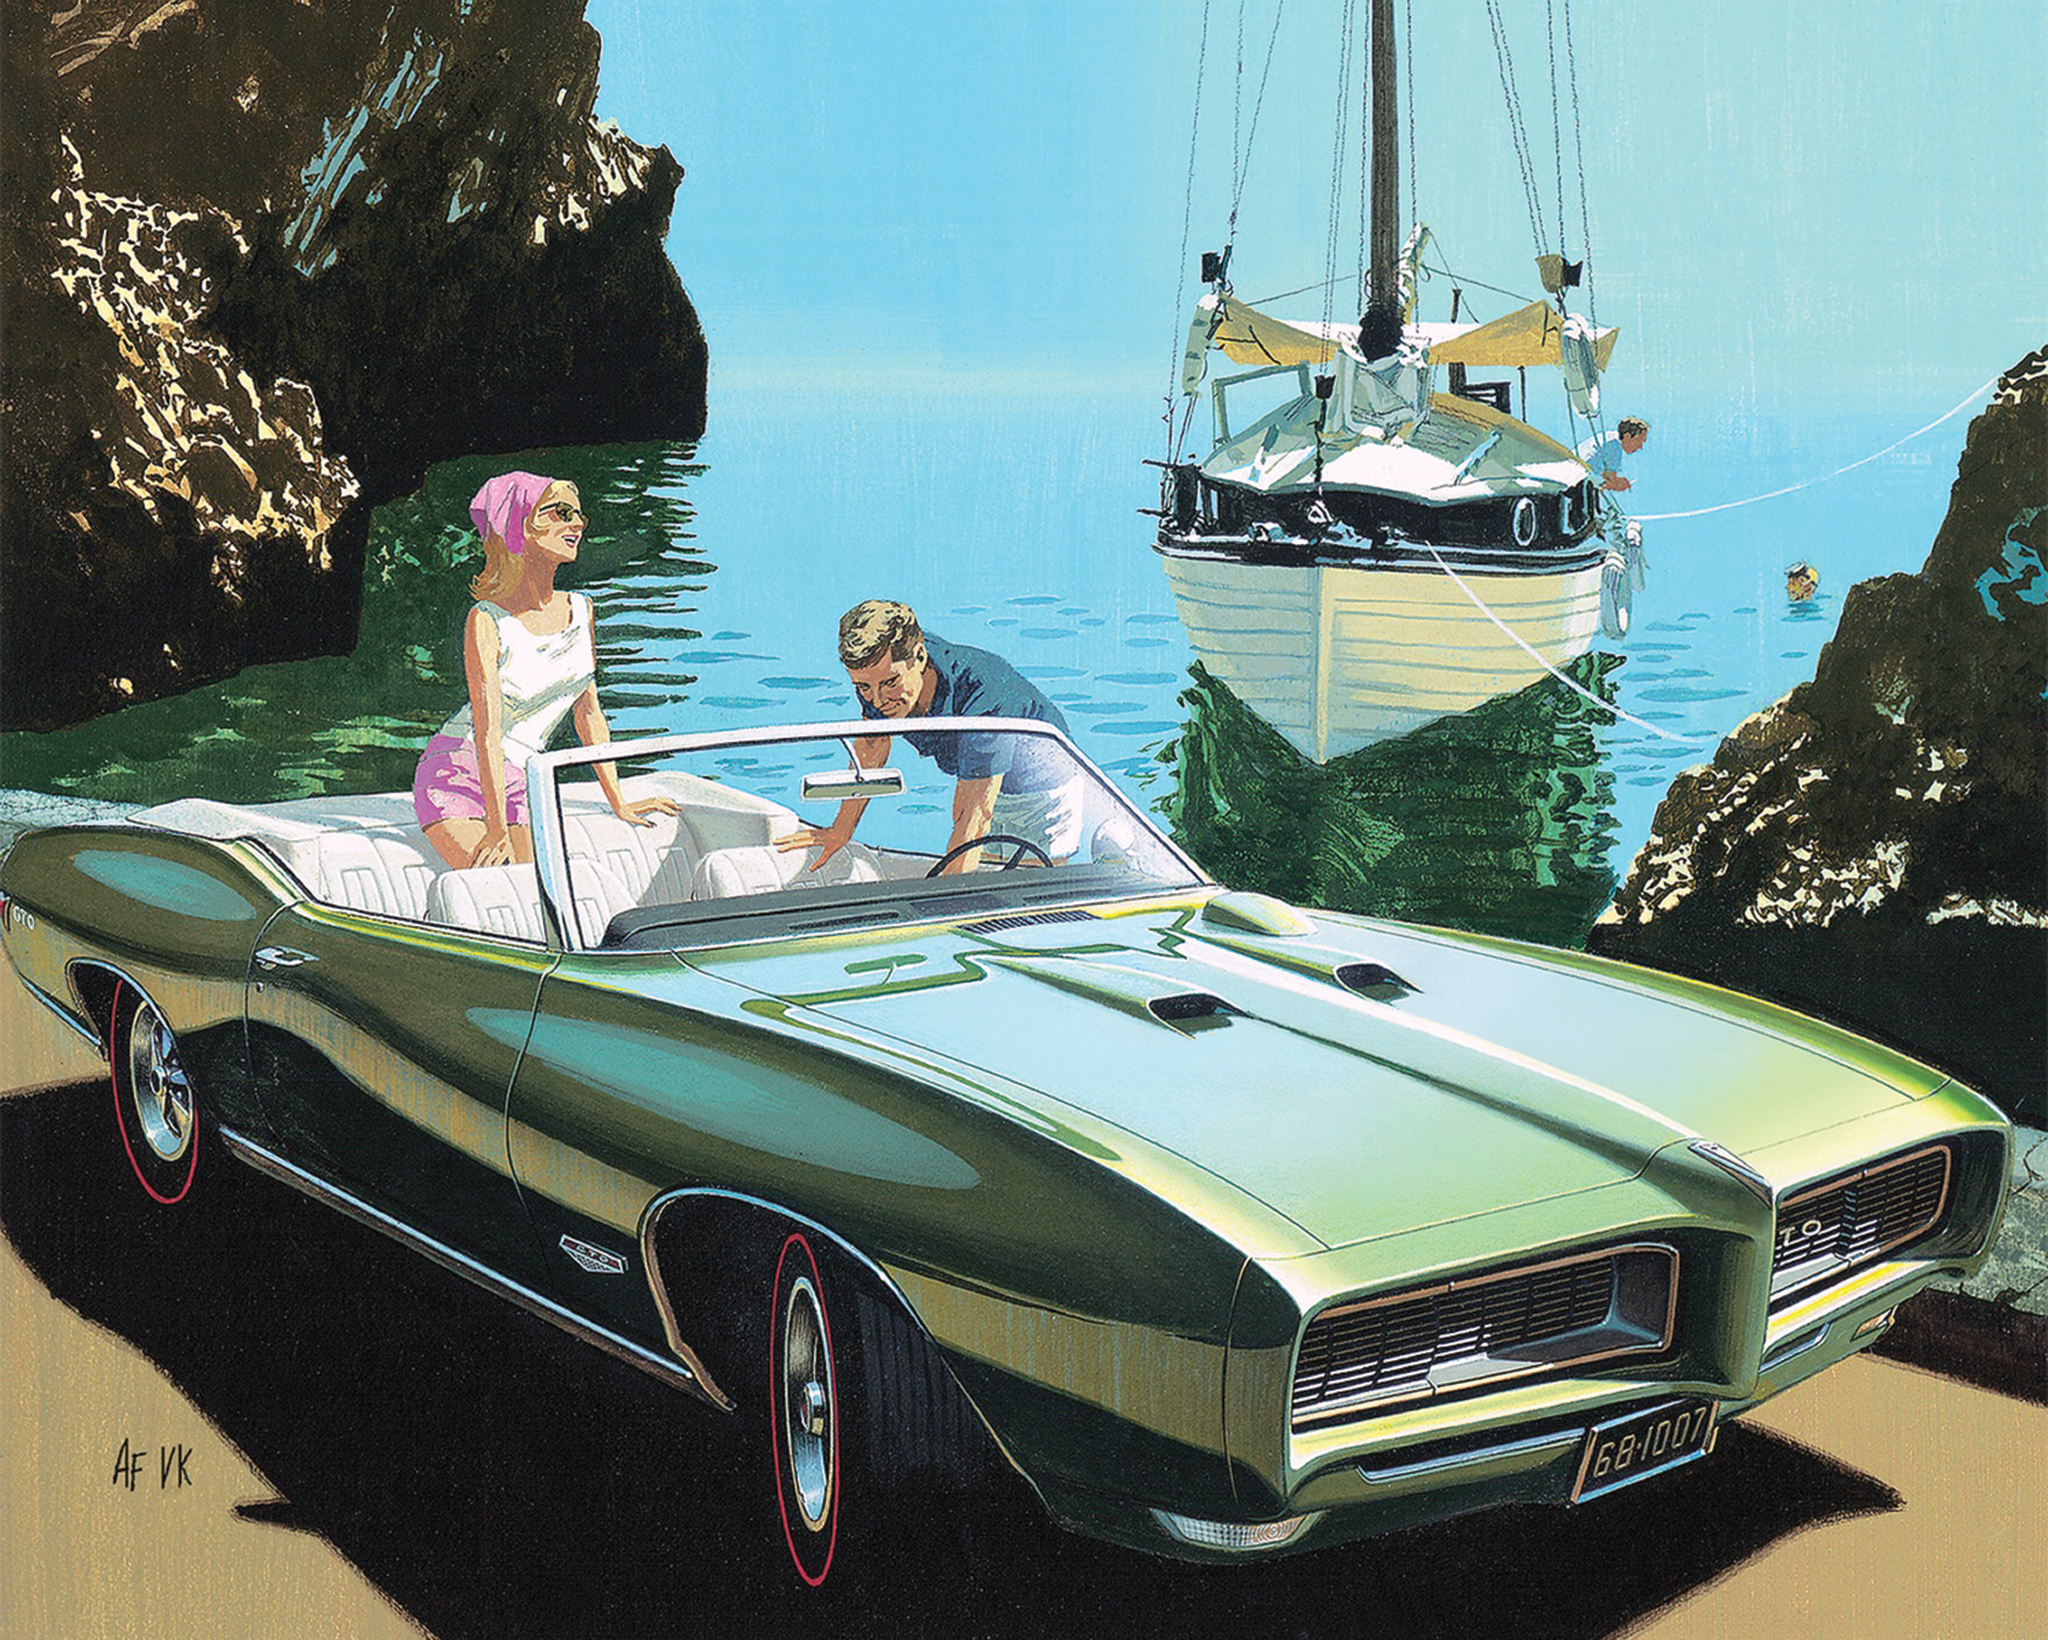 Corfu Cove was taken from an actual photograph, as were many of the backgrounds Fitzpatrick and Kaufman used in their work. This particular painting features the artist himself. See the skin diver in the water? That's Art!